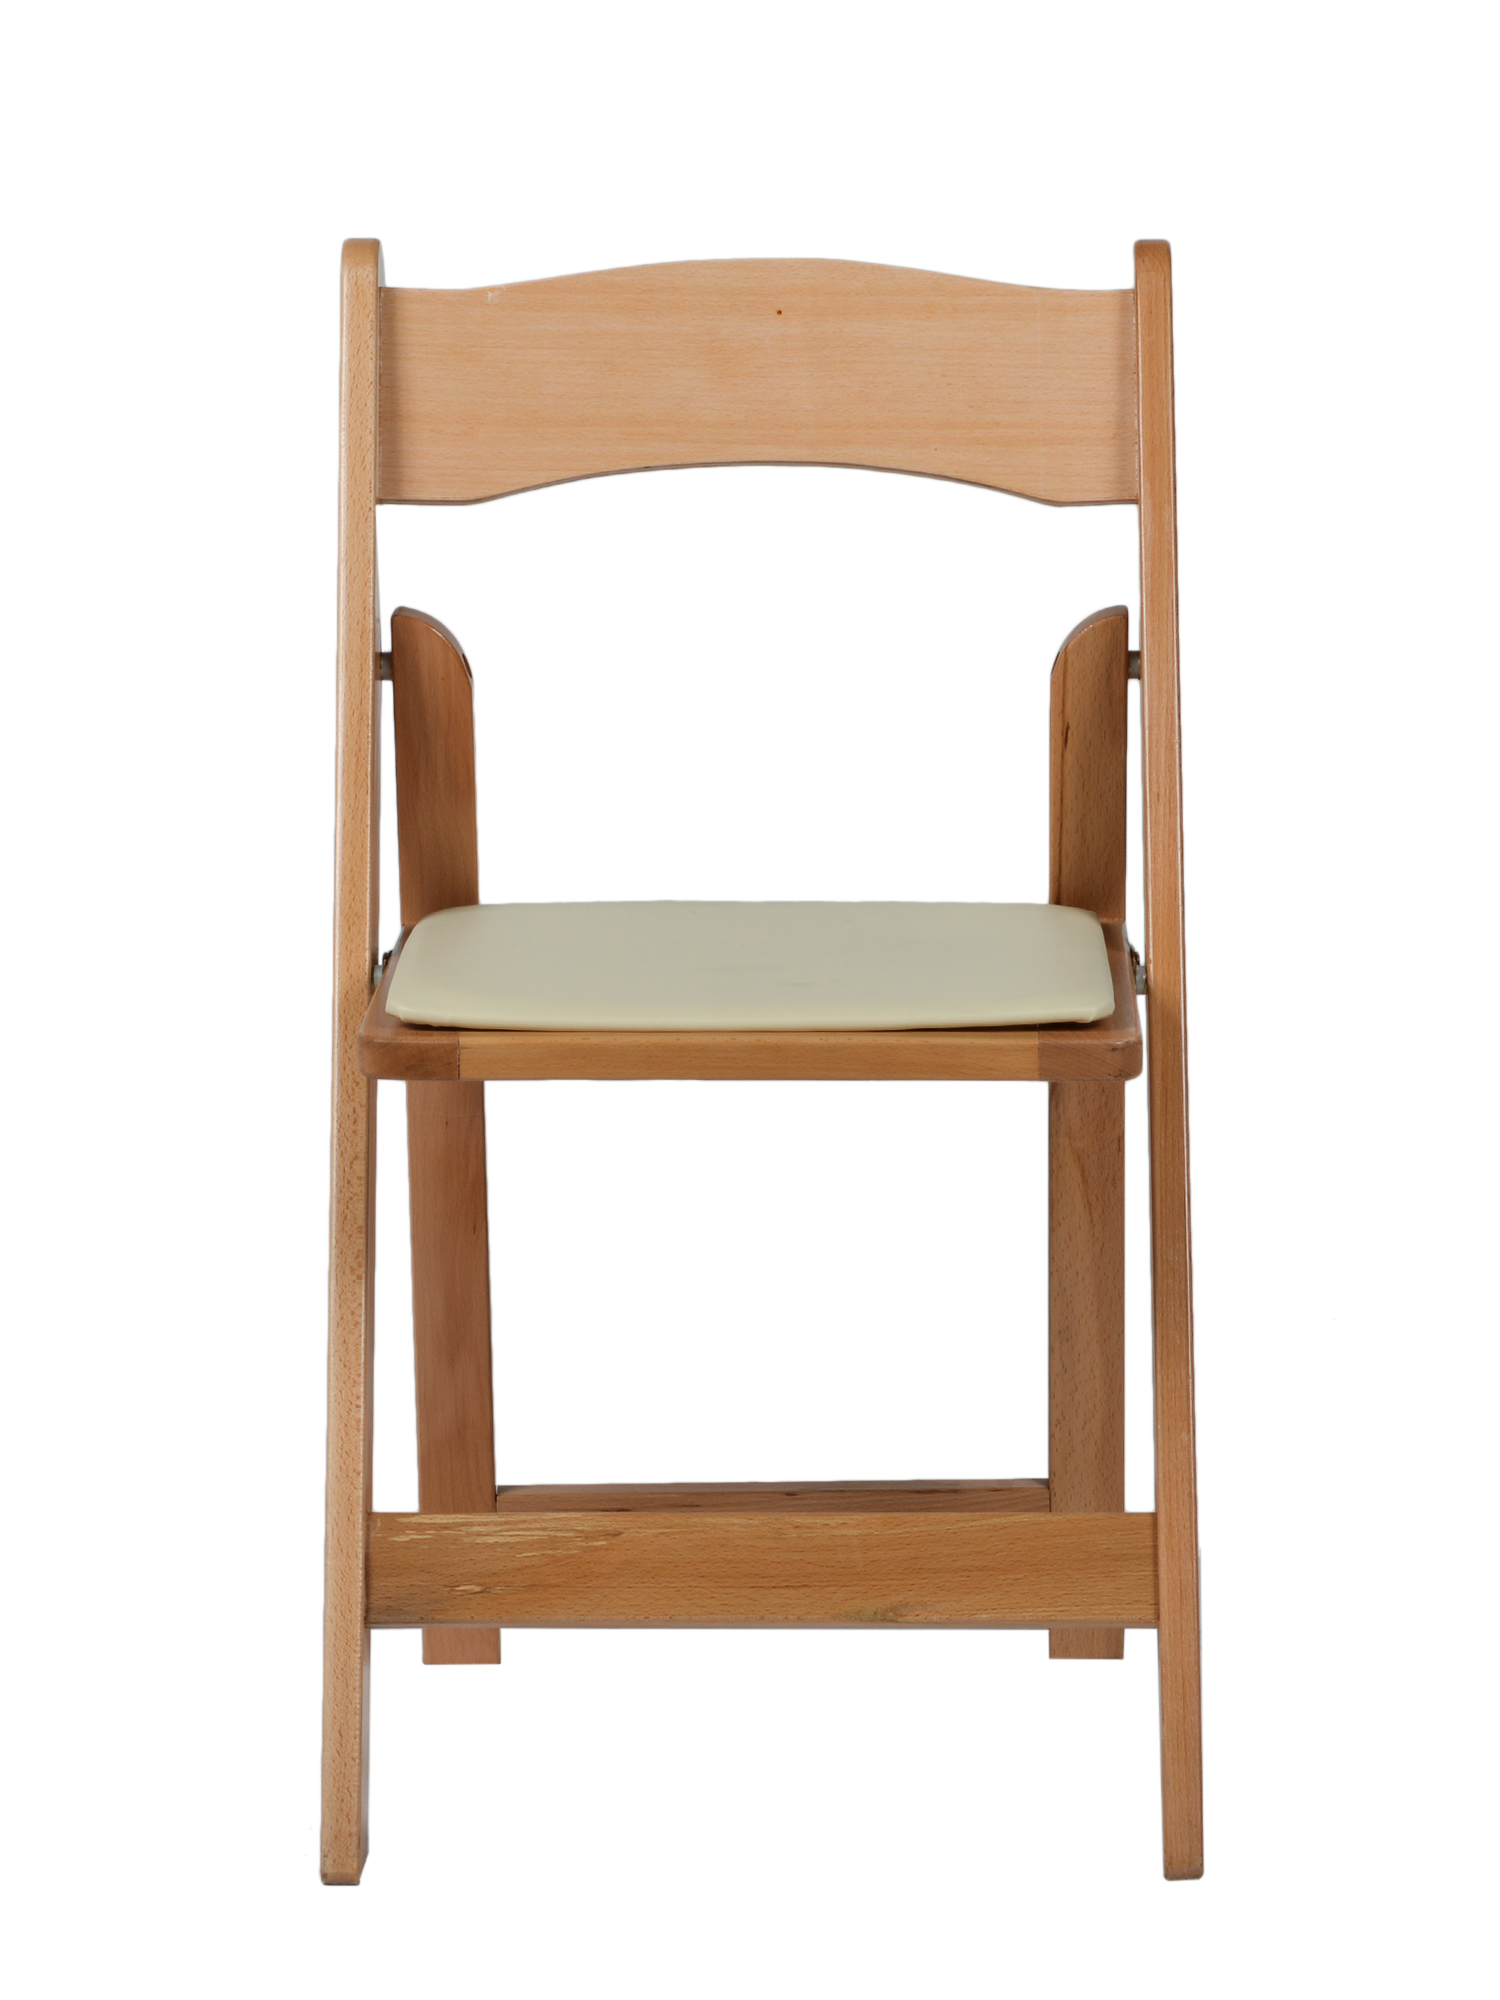 NaturalAmerican Classic Wood Folding Chair   CSP. Padded Folding Chairs Wood. Home Design Ideas